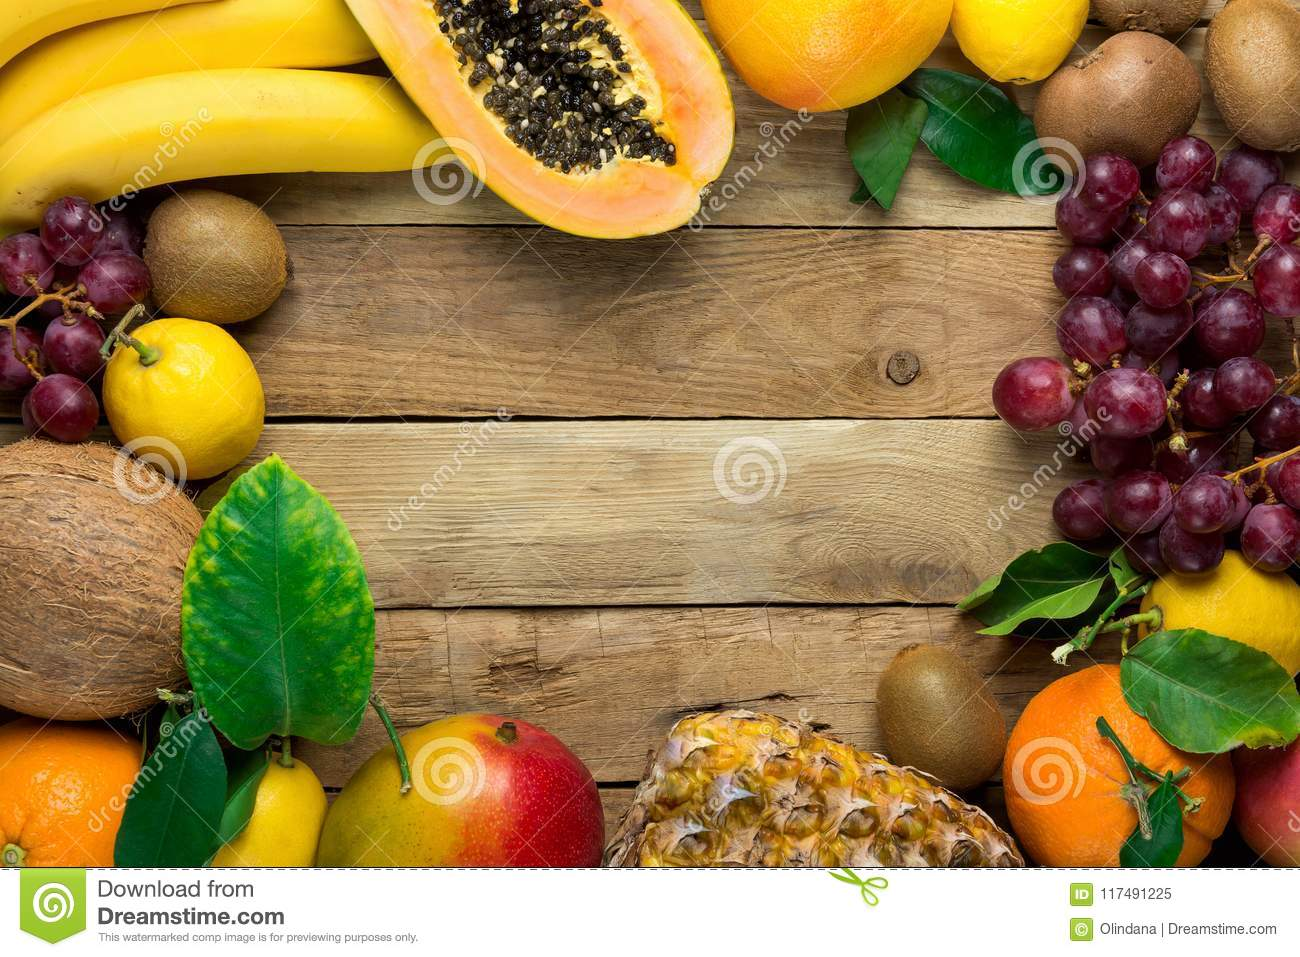 Frame with Copy Space from Fresh Tropical and Summer Fruits Pineapple Papaya Mango Coconut Oranges Kiwi Bananas Lemons Grapefruit